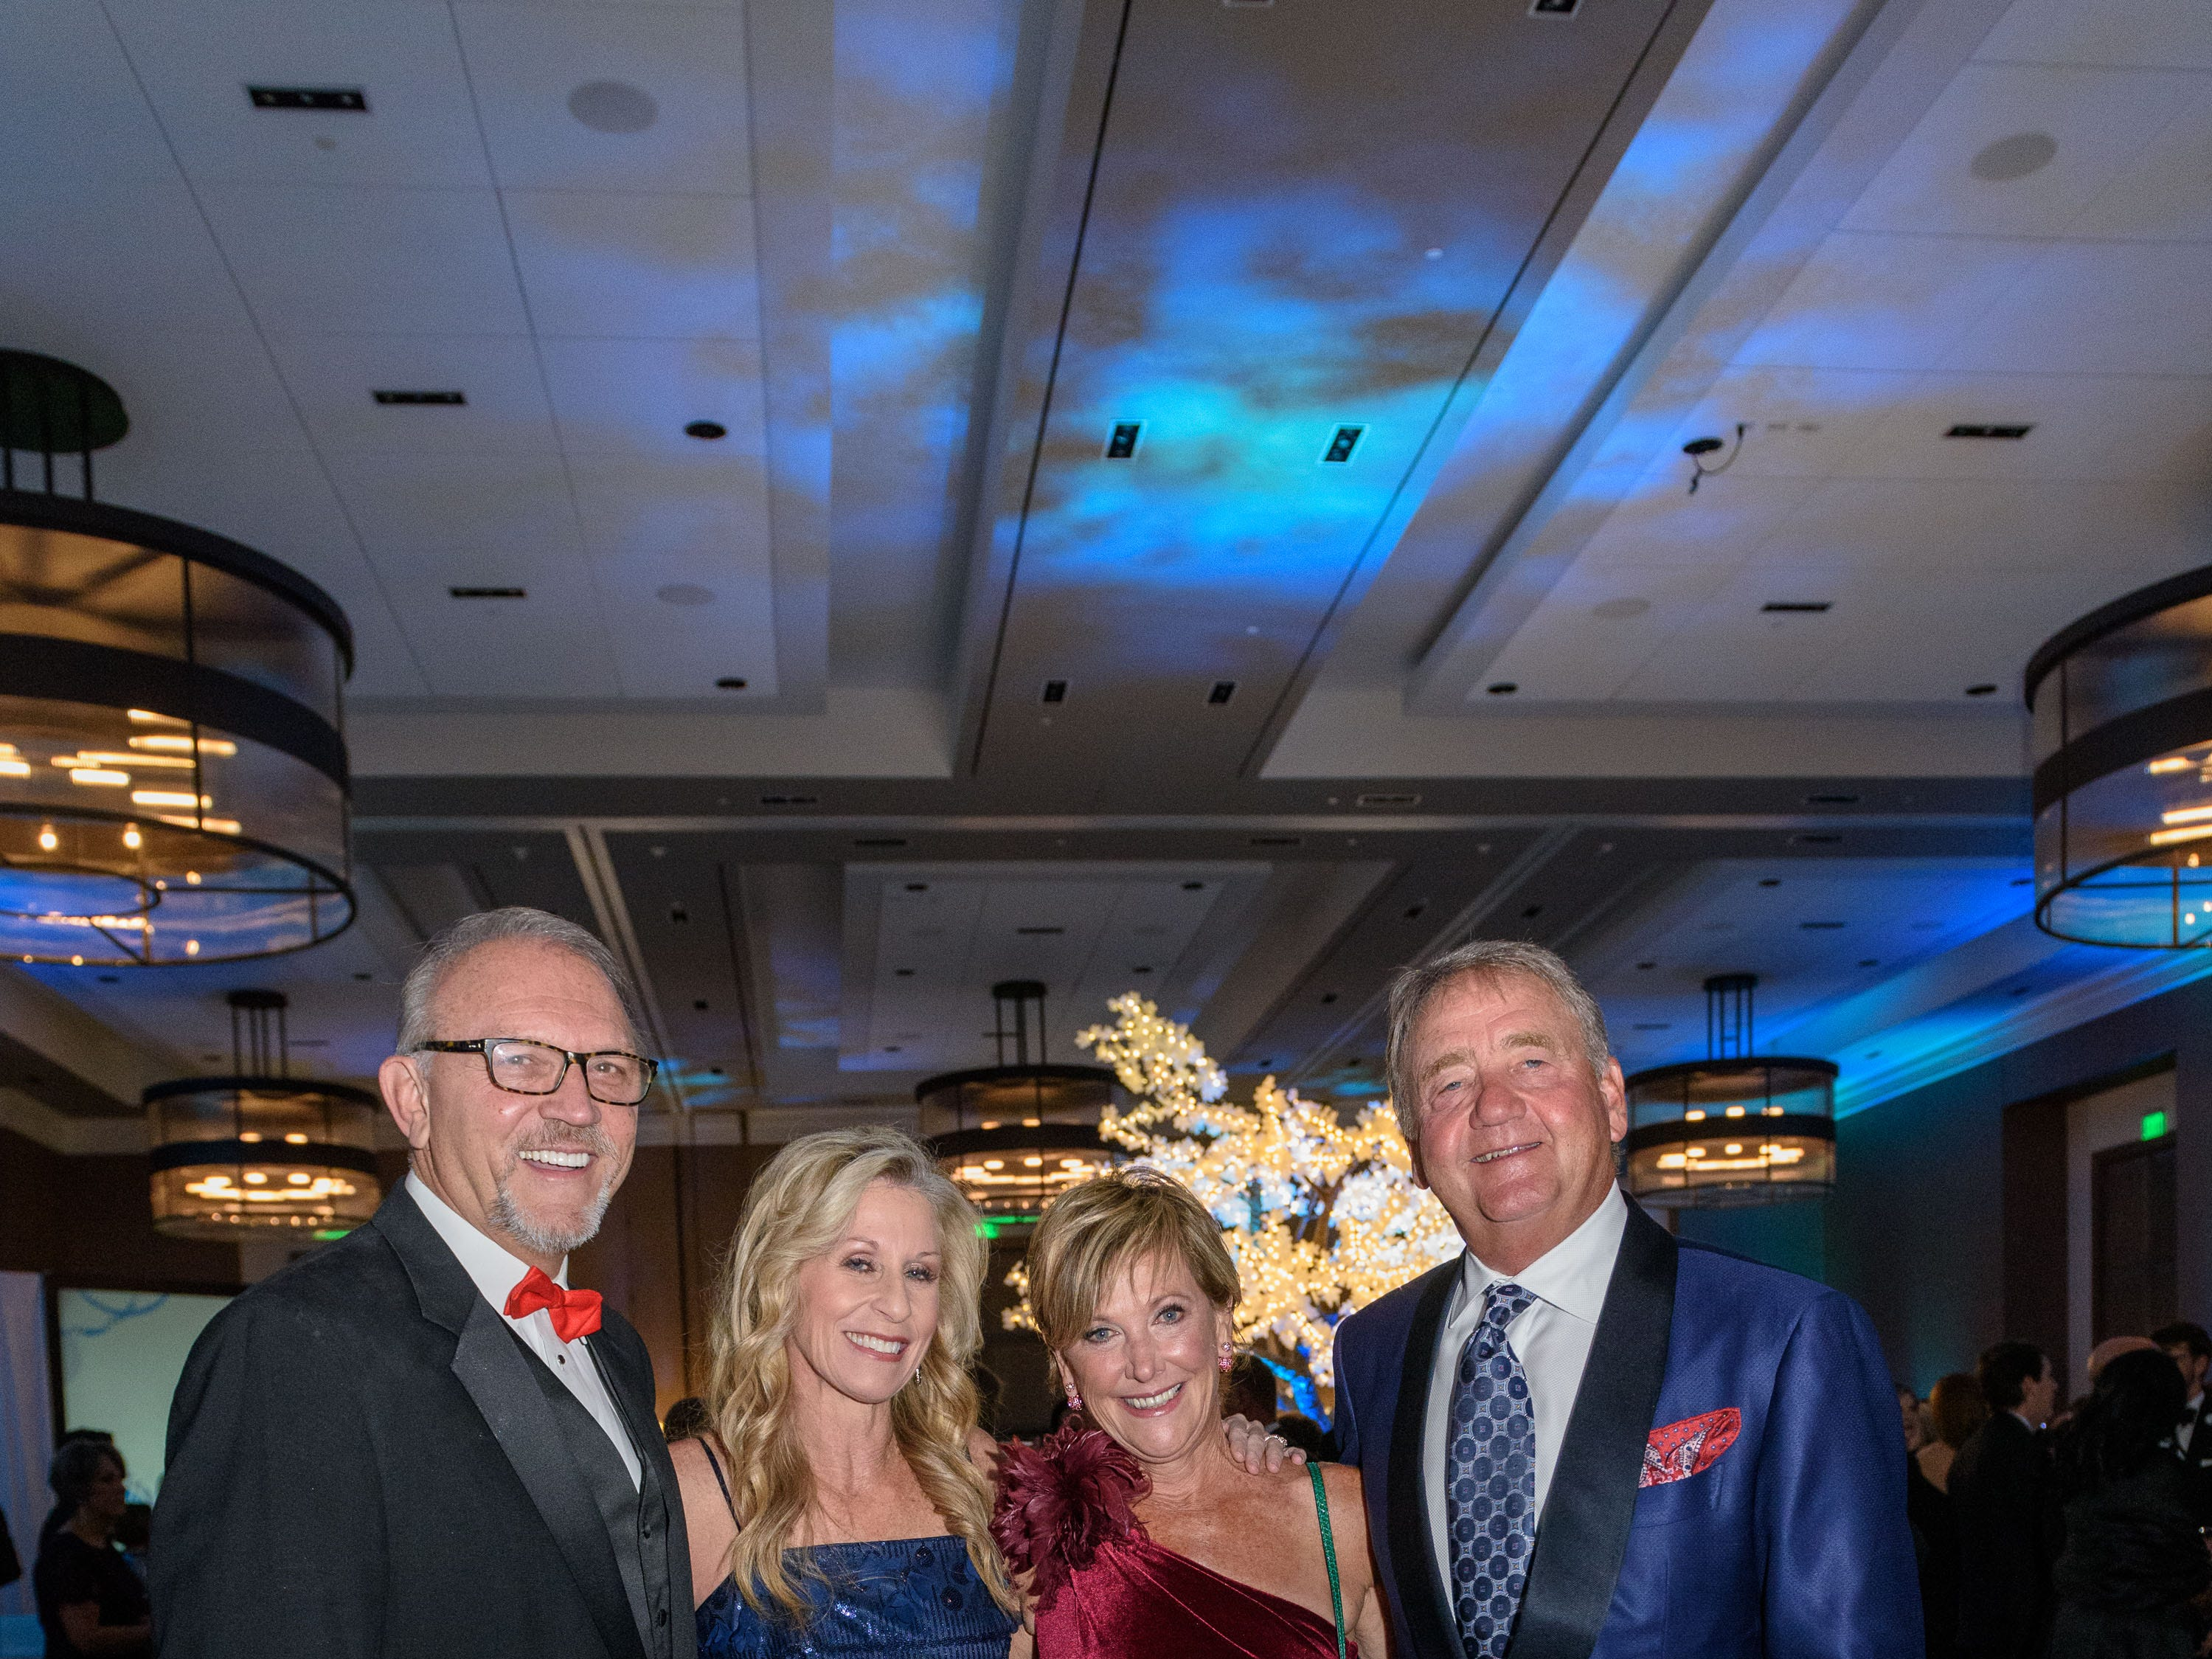 Russ and Kathy Cox pose for a photo with Karen and Gary Lawrence at the Snow Ball Gala at the Omni Hotel, a benefit for the Jennifer Lawrence Cardiac Intensive Care Unit (CICU) at Norton ChildrenÕs Hospital. Nov. 17, 2018